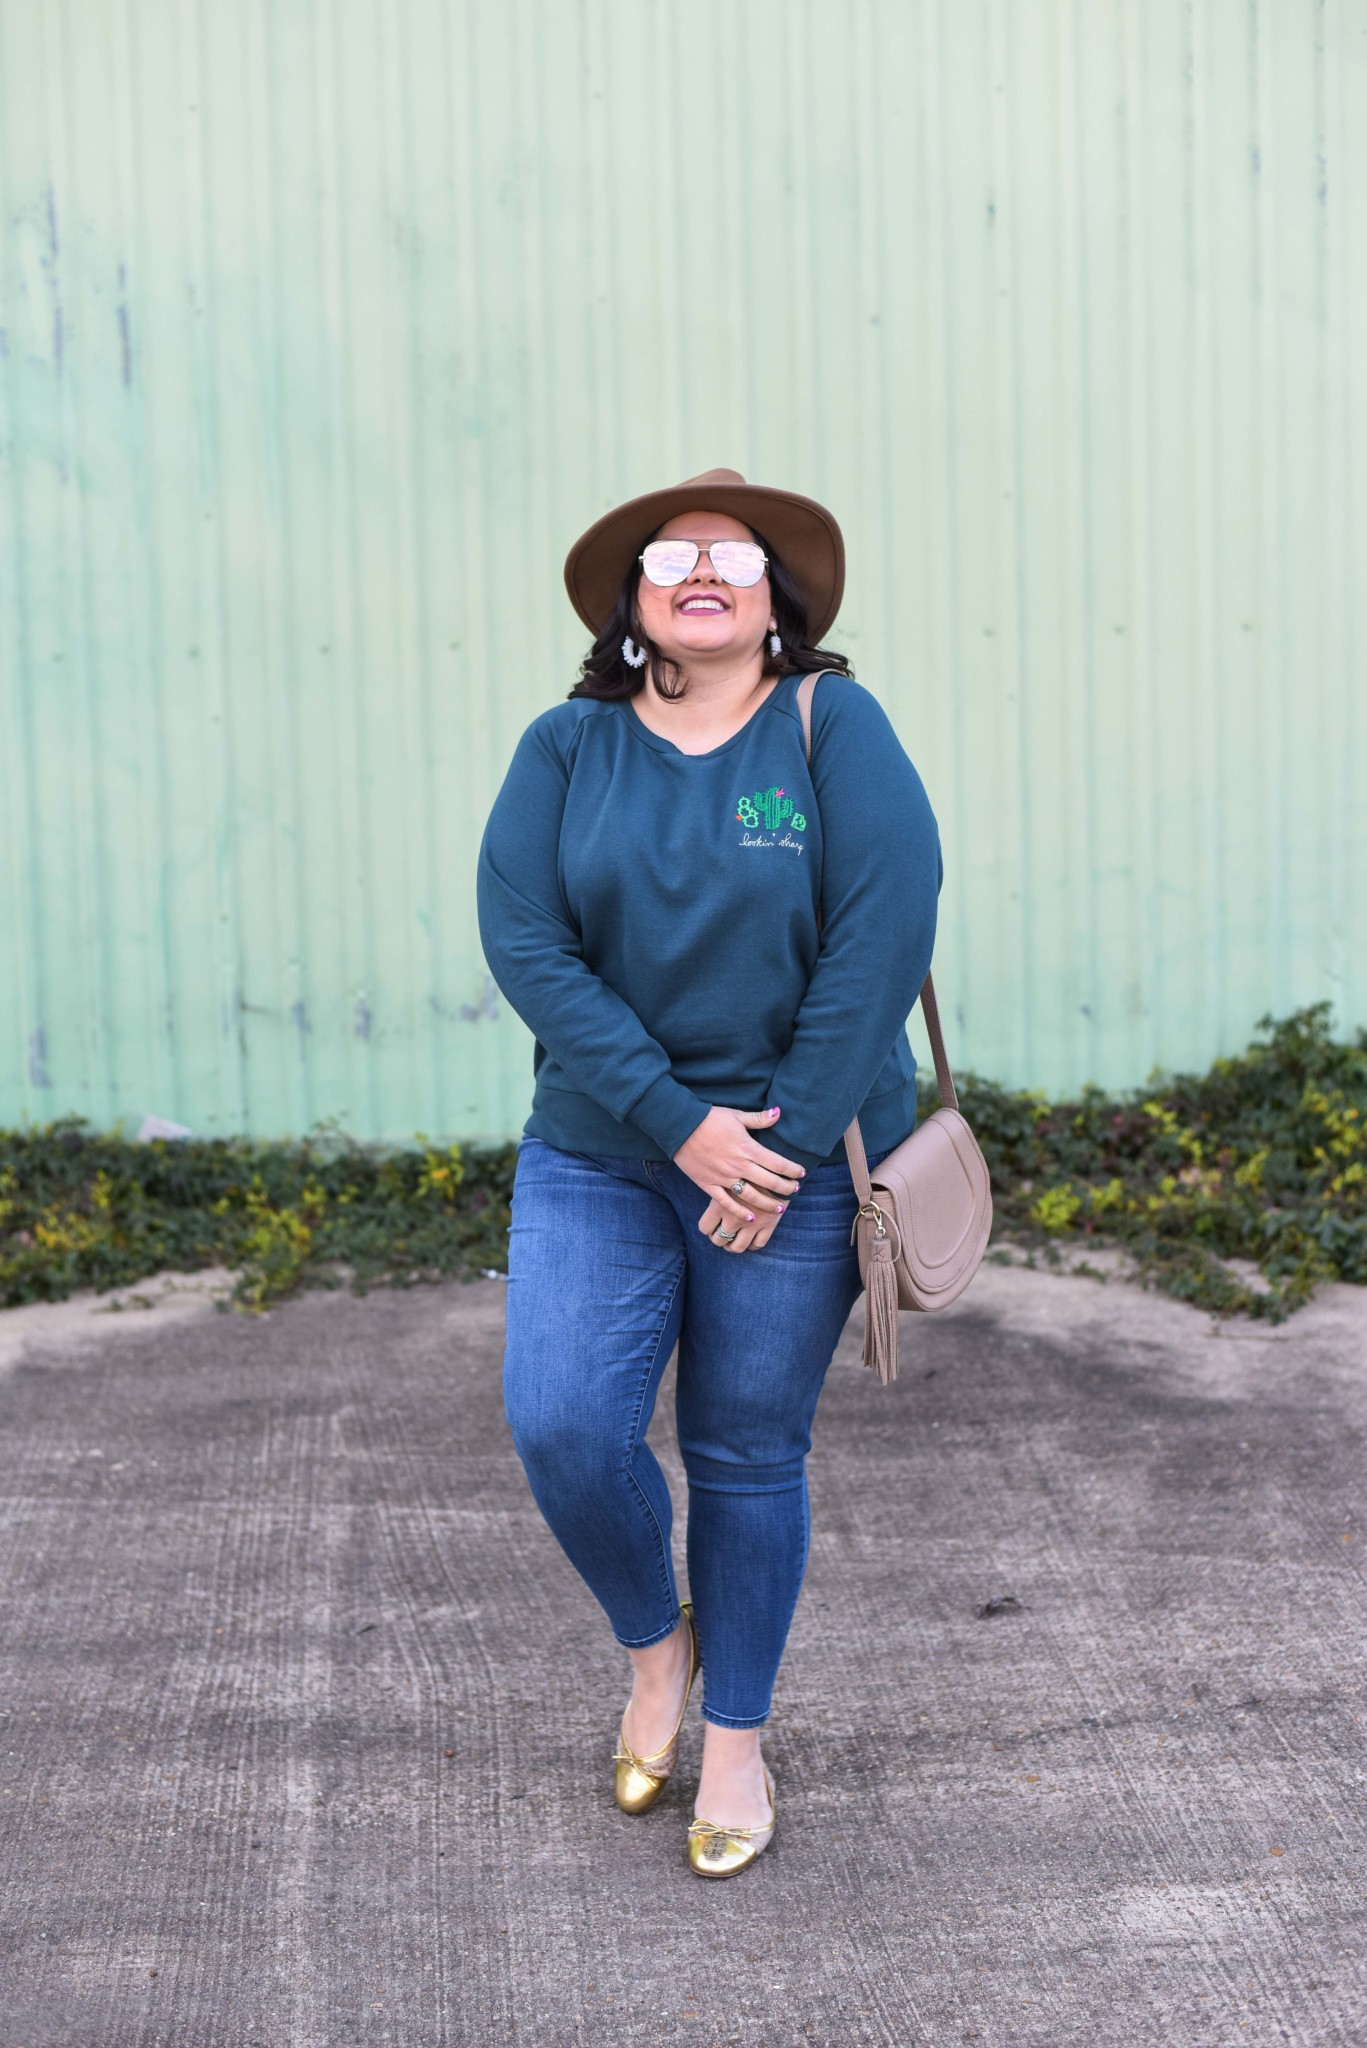 The Ori Embroidered Sweatshirt is one of the comfiest items I have ever worn. And the embroidery adds an extra hint of glam for a day out.